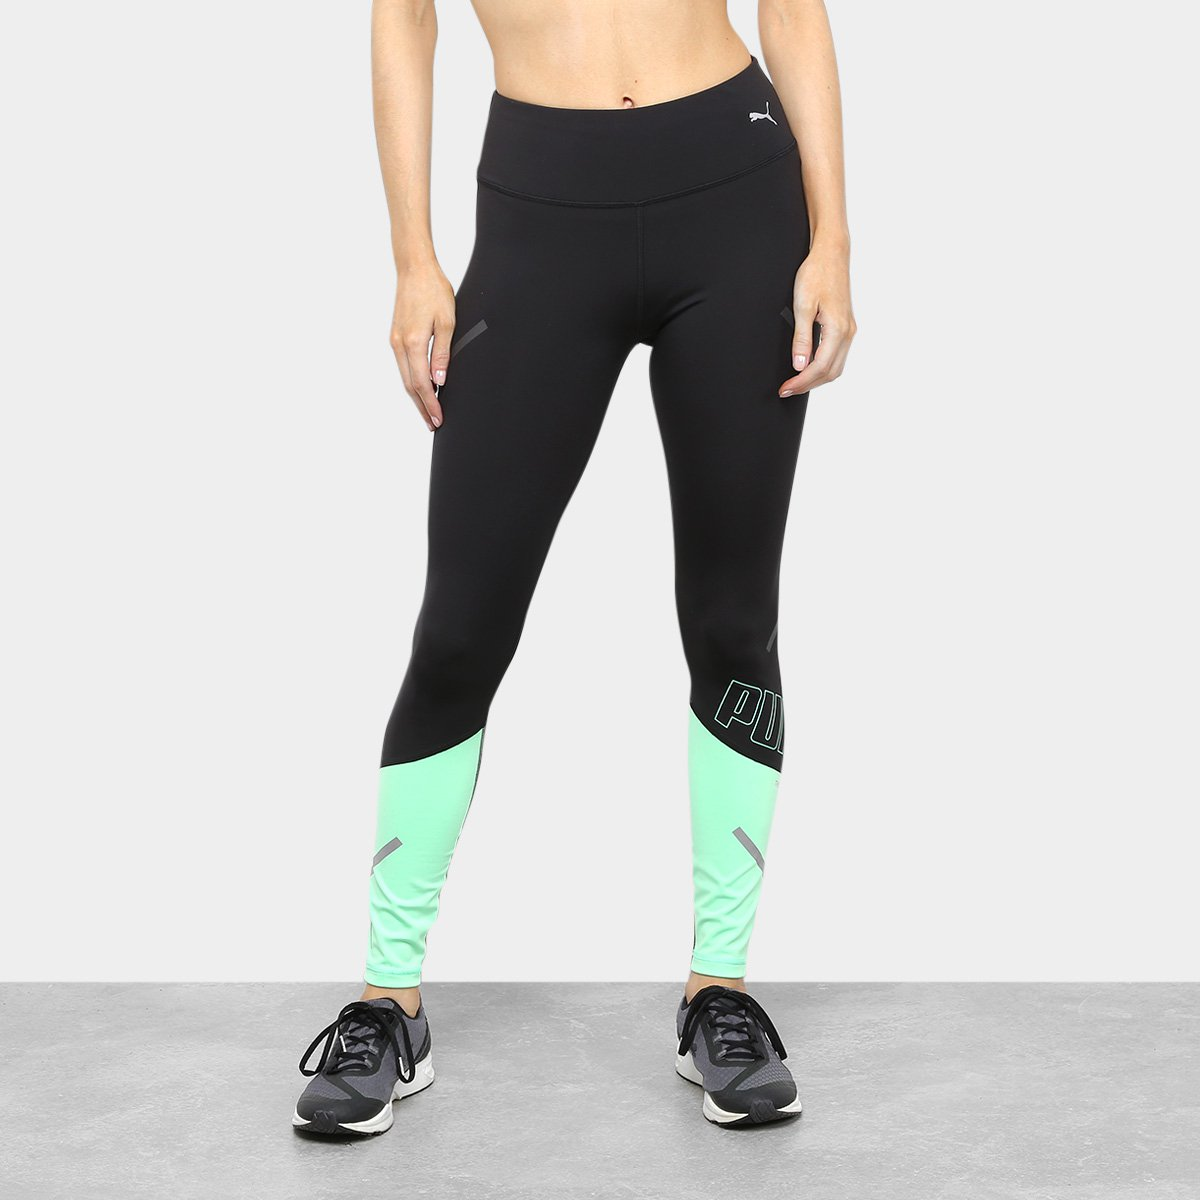 Calça Legging Puma Runner Id Thermo R+ 7/8 Tight Feminina